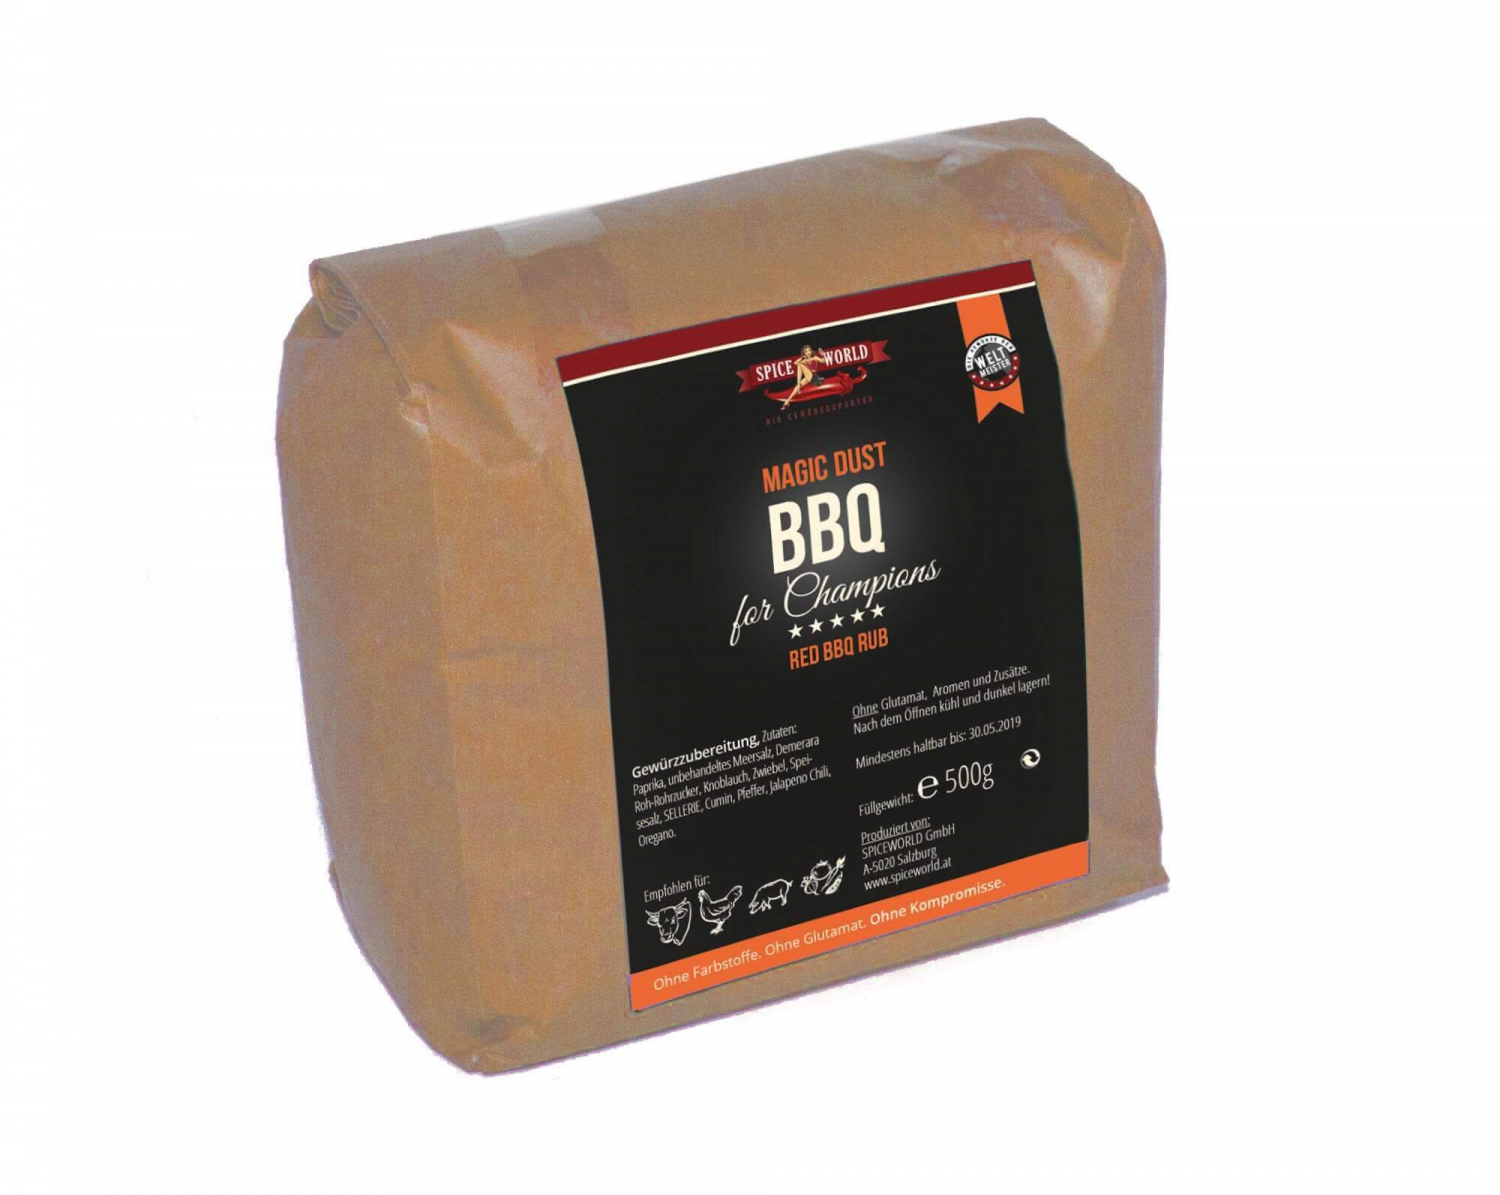 Barbecue-for-Champions Pork & Beef - Herb Spice Blend, 500g Beutel 500g Beutel